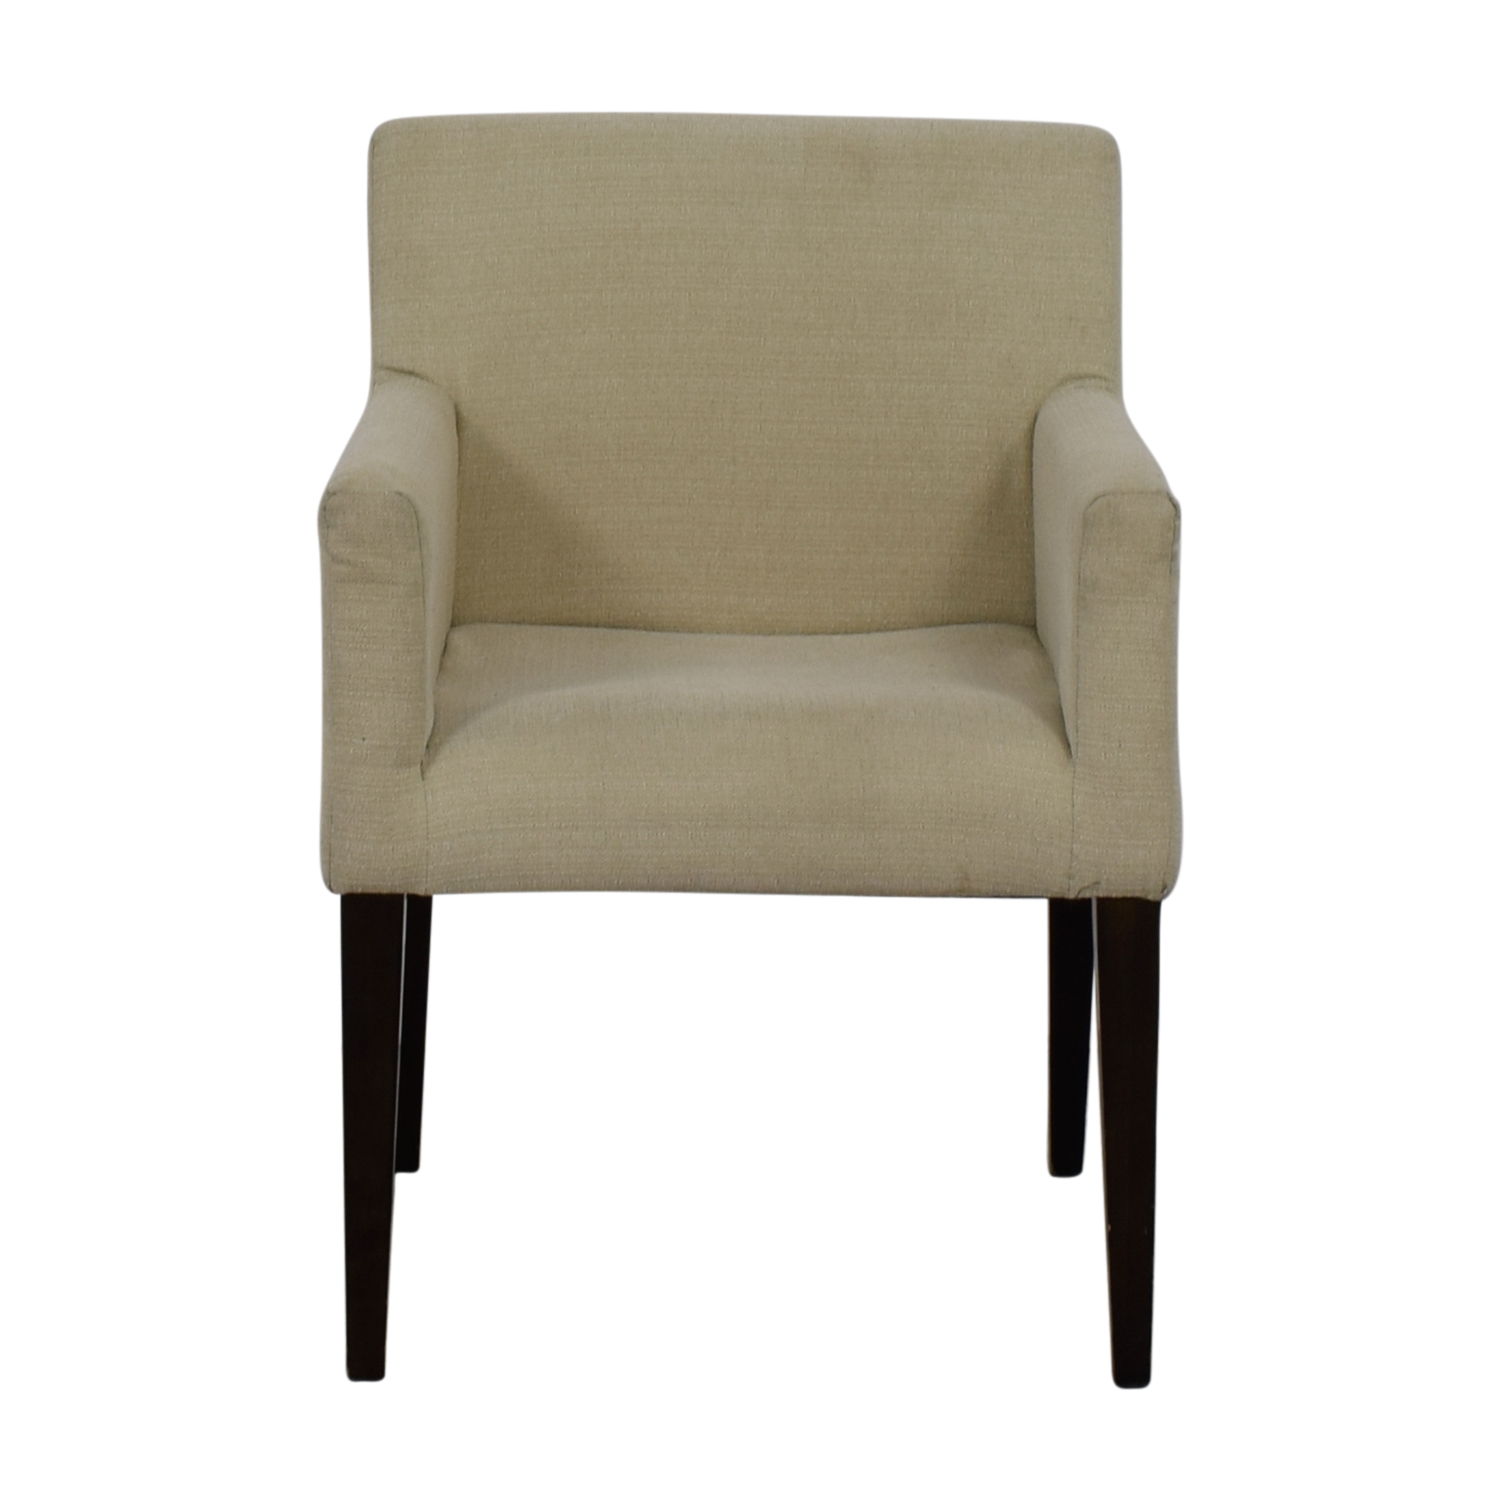 90 Off West Elm West Elm Cream Accent Chair Chairs